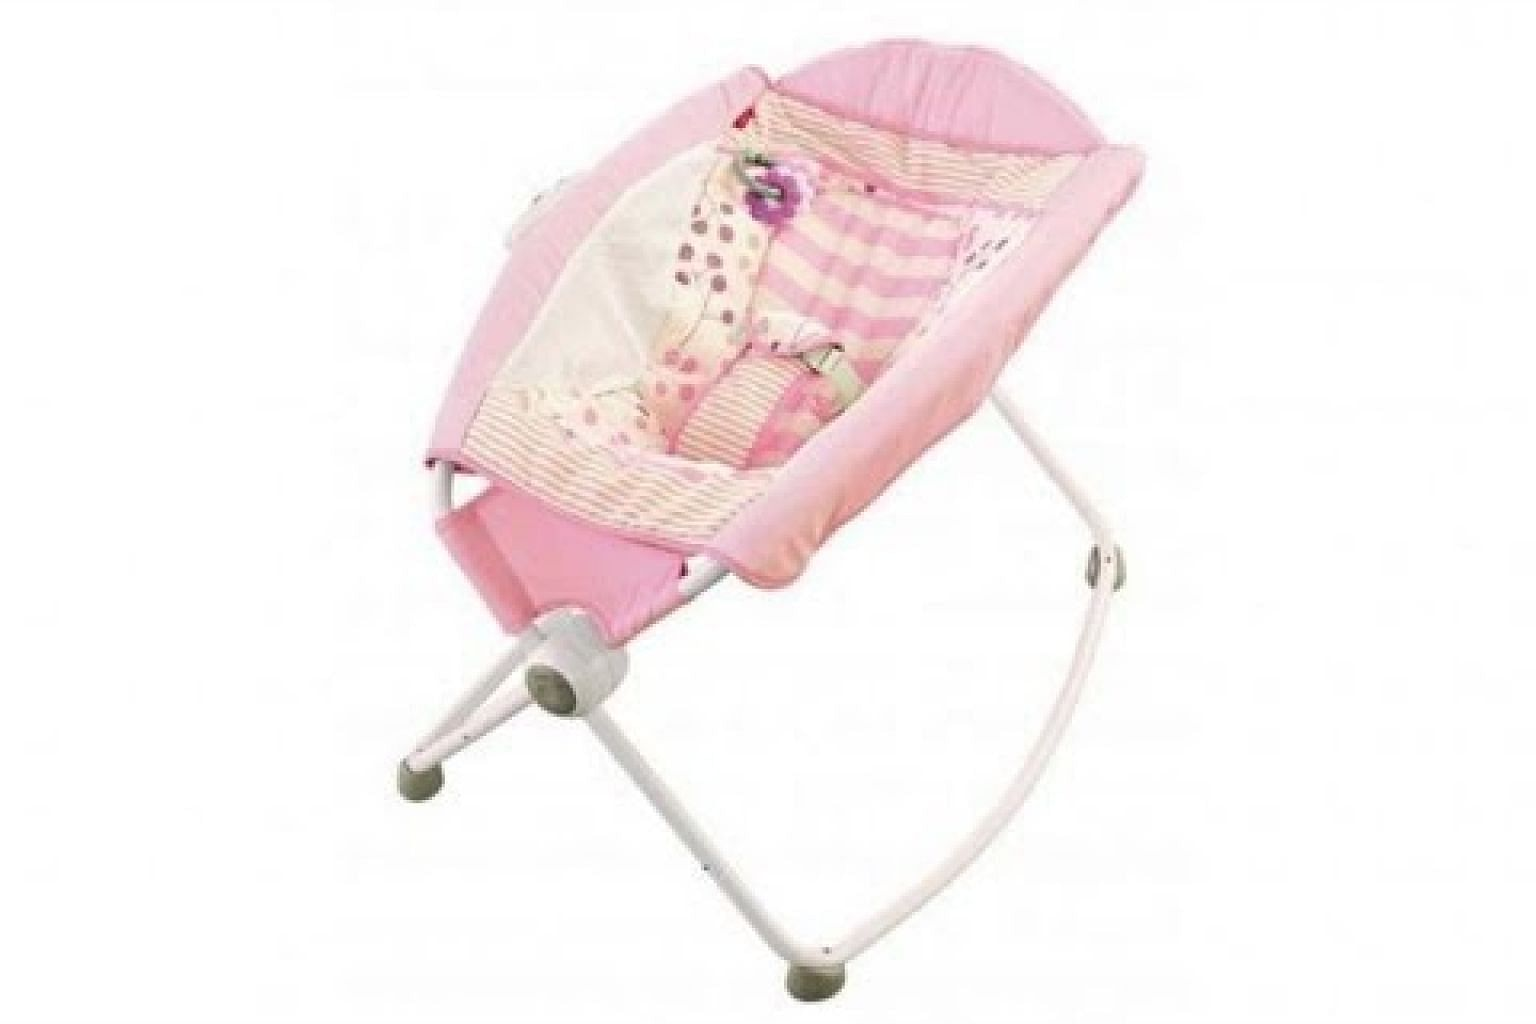 Fisher-Price recalls sleepers after reports of death